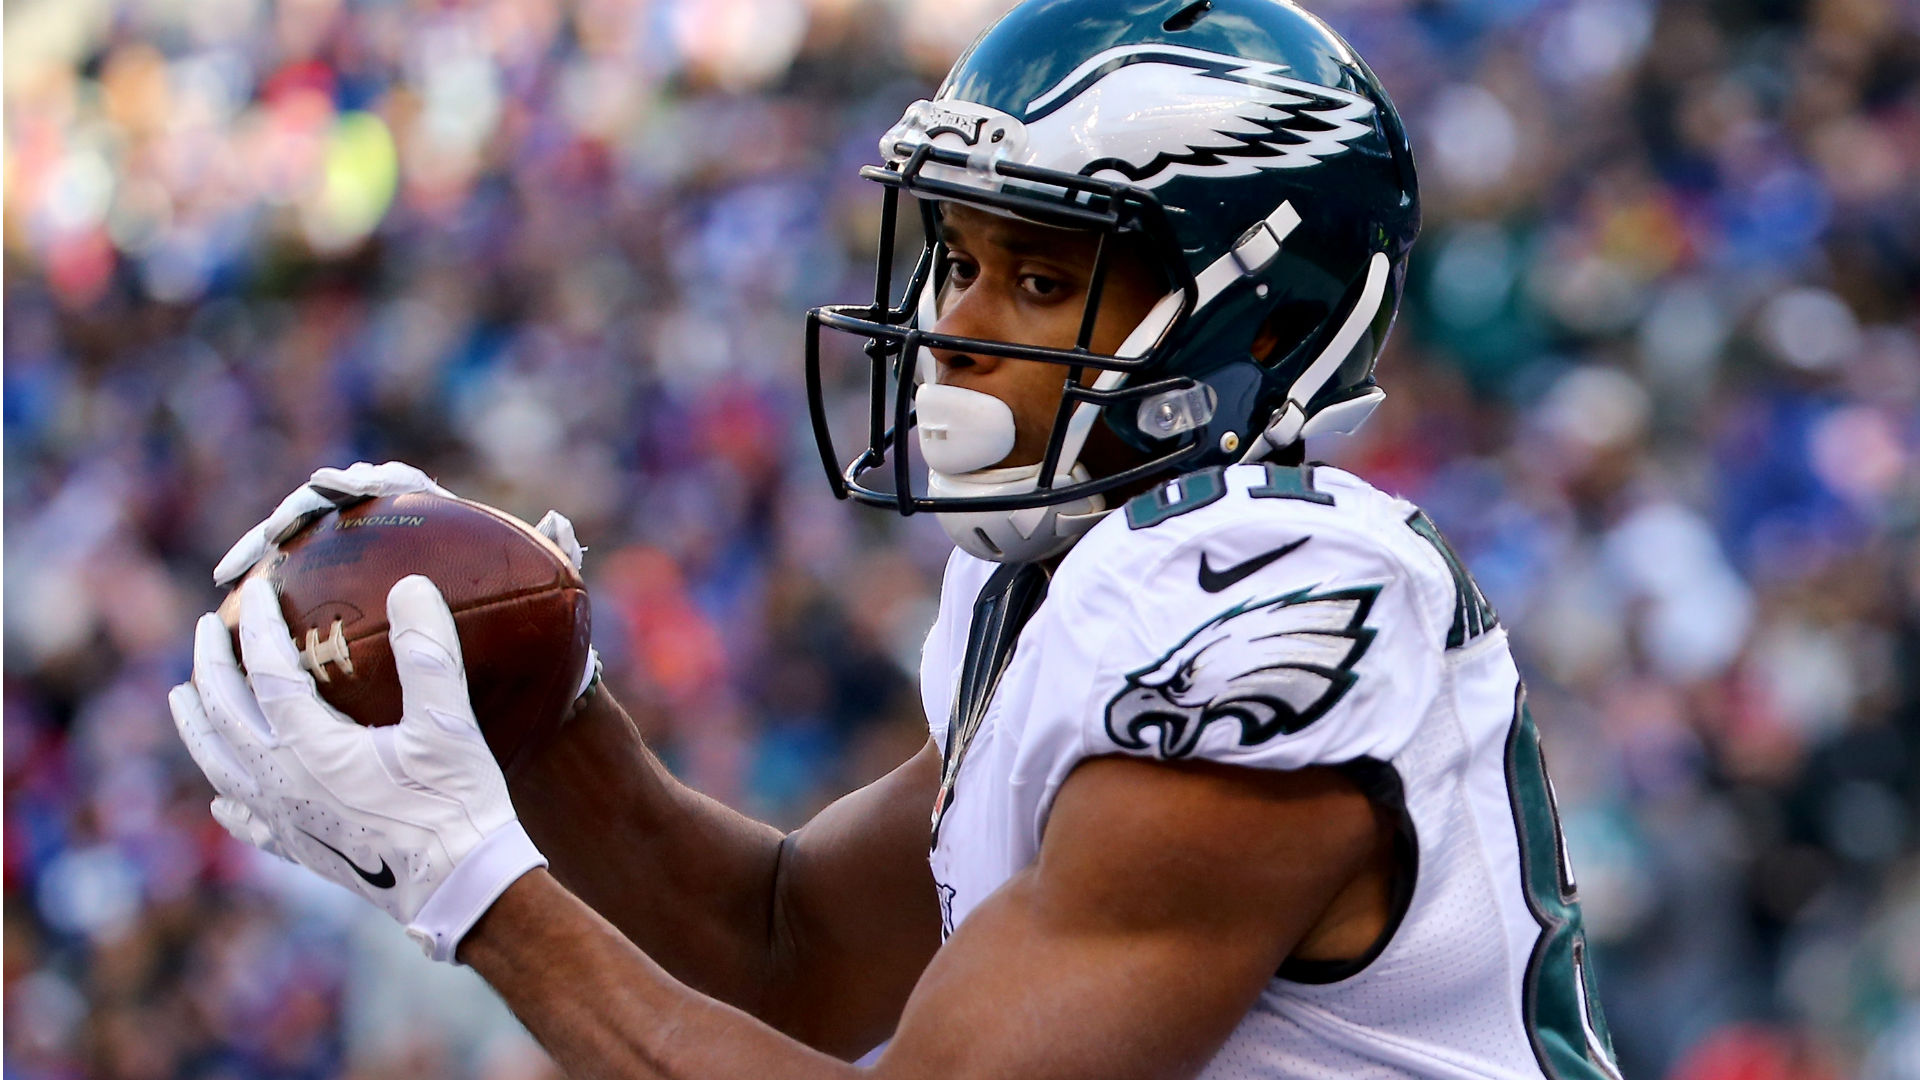 49ers sign former Eagles WR Jordan Matthews